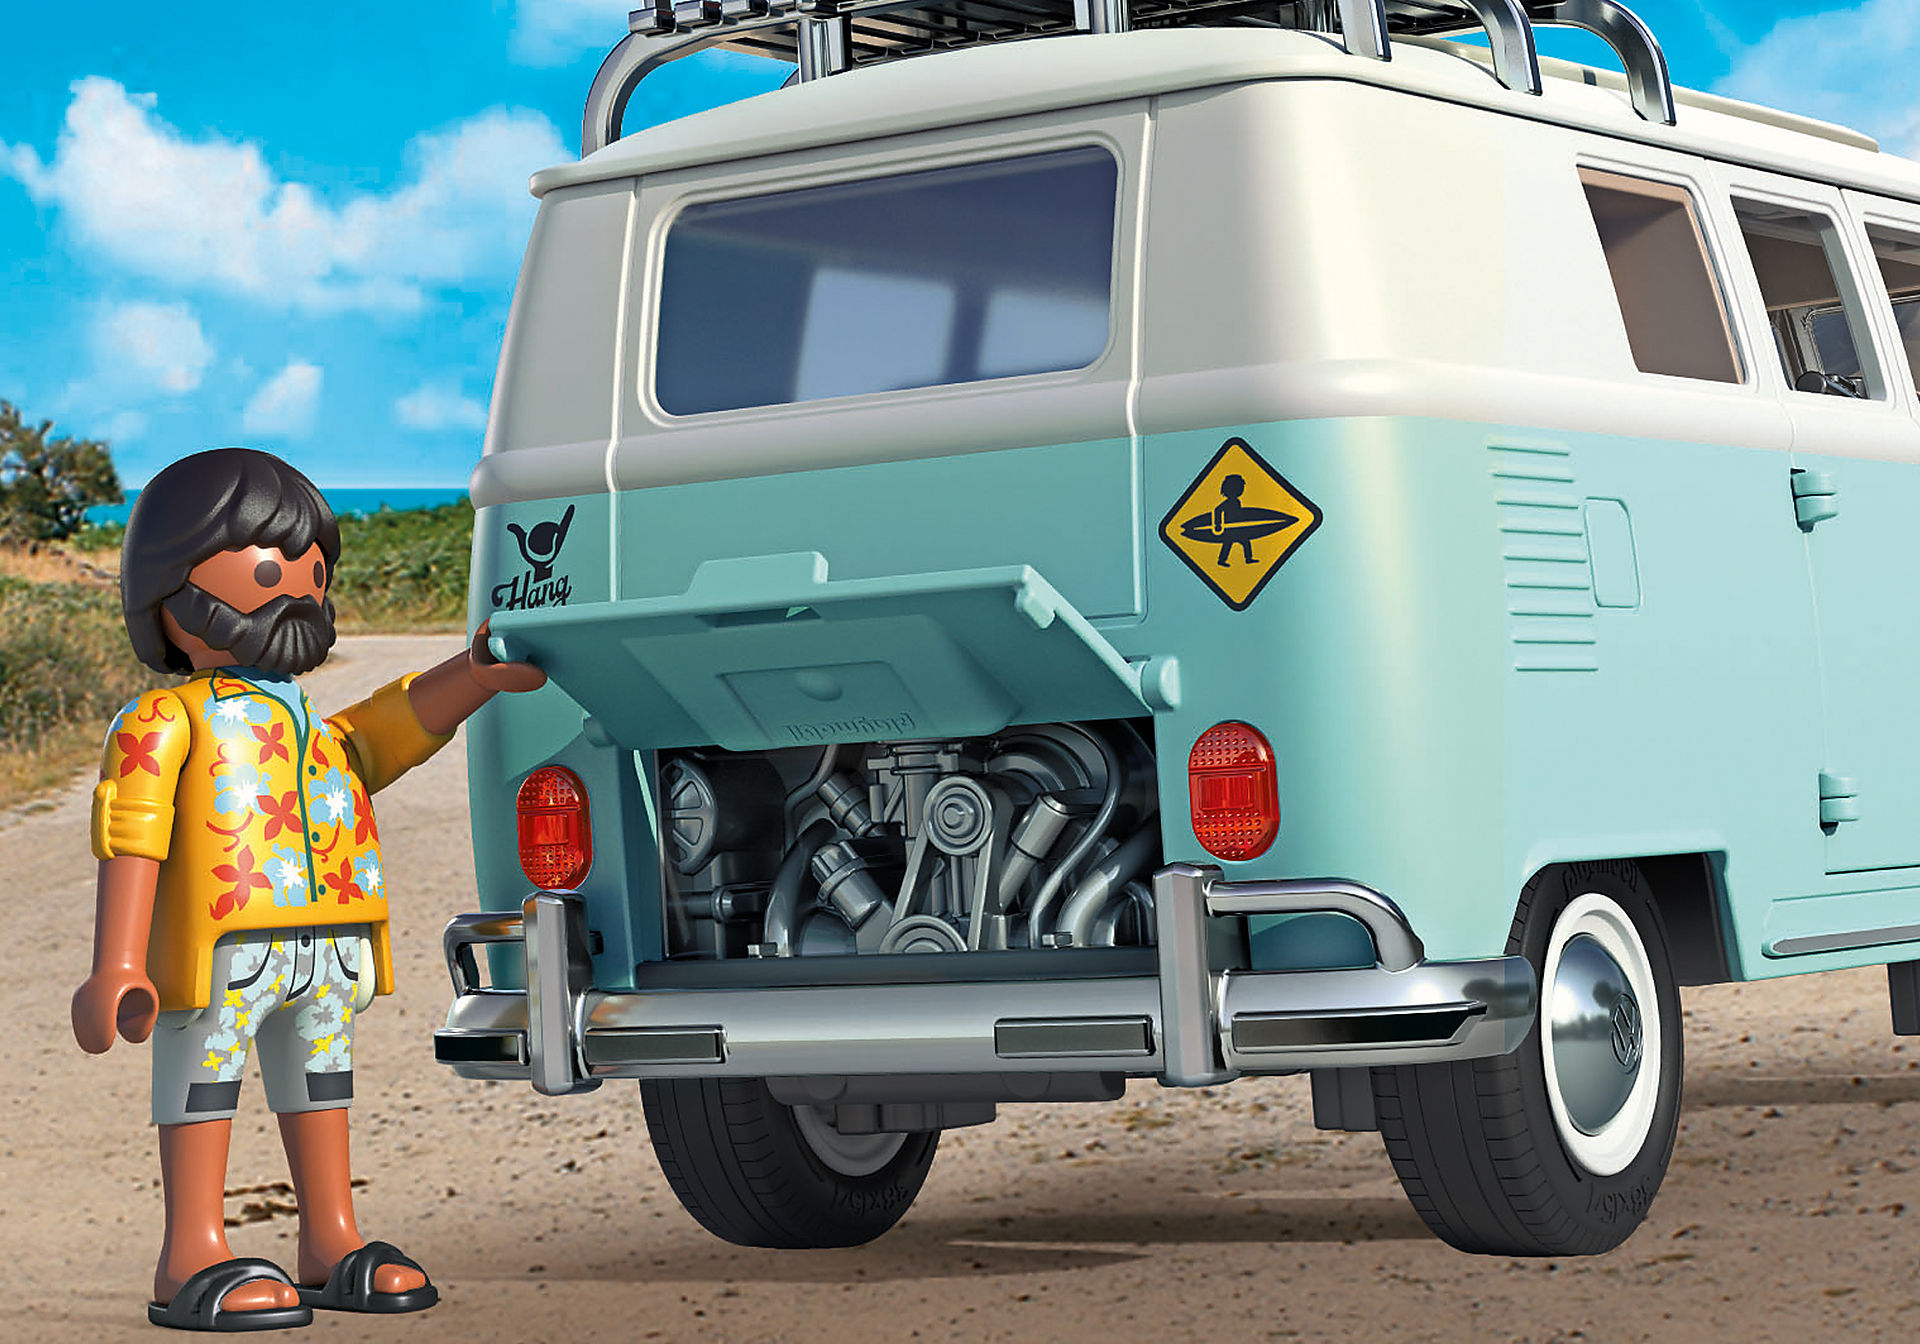 70826 Volkswagen T1 Camping Bus - Special Edition zoom image10